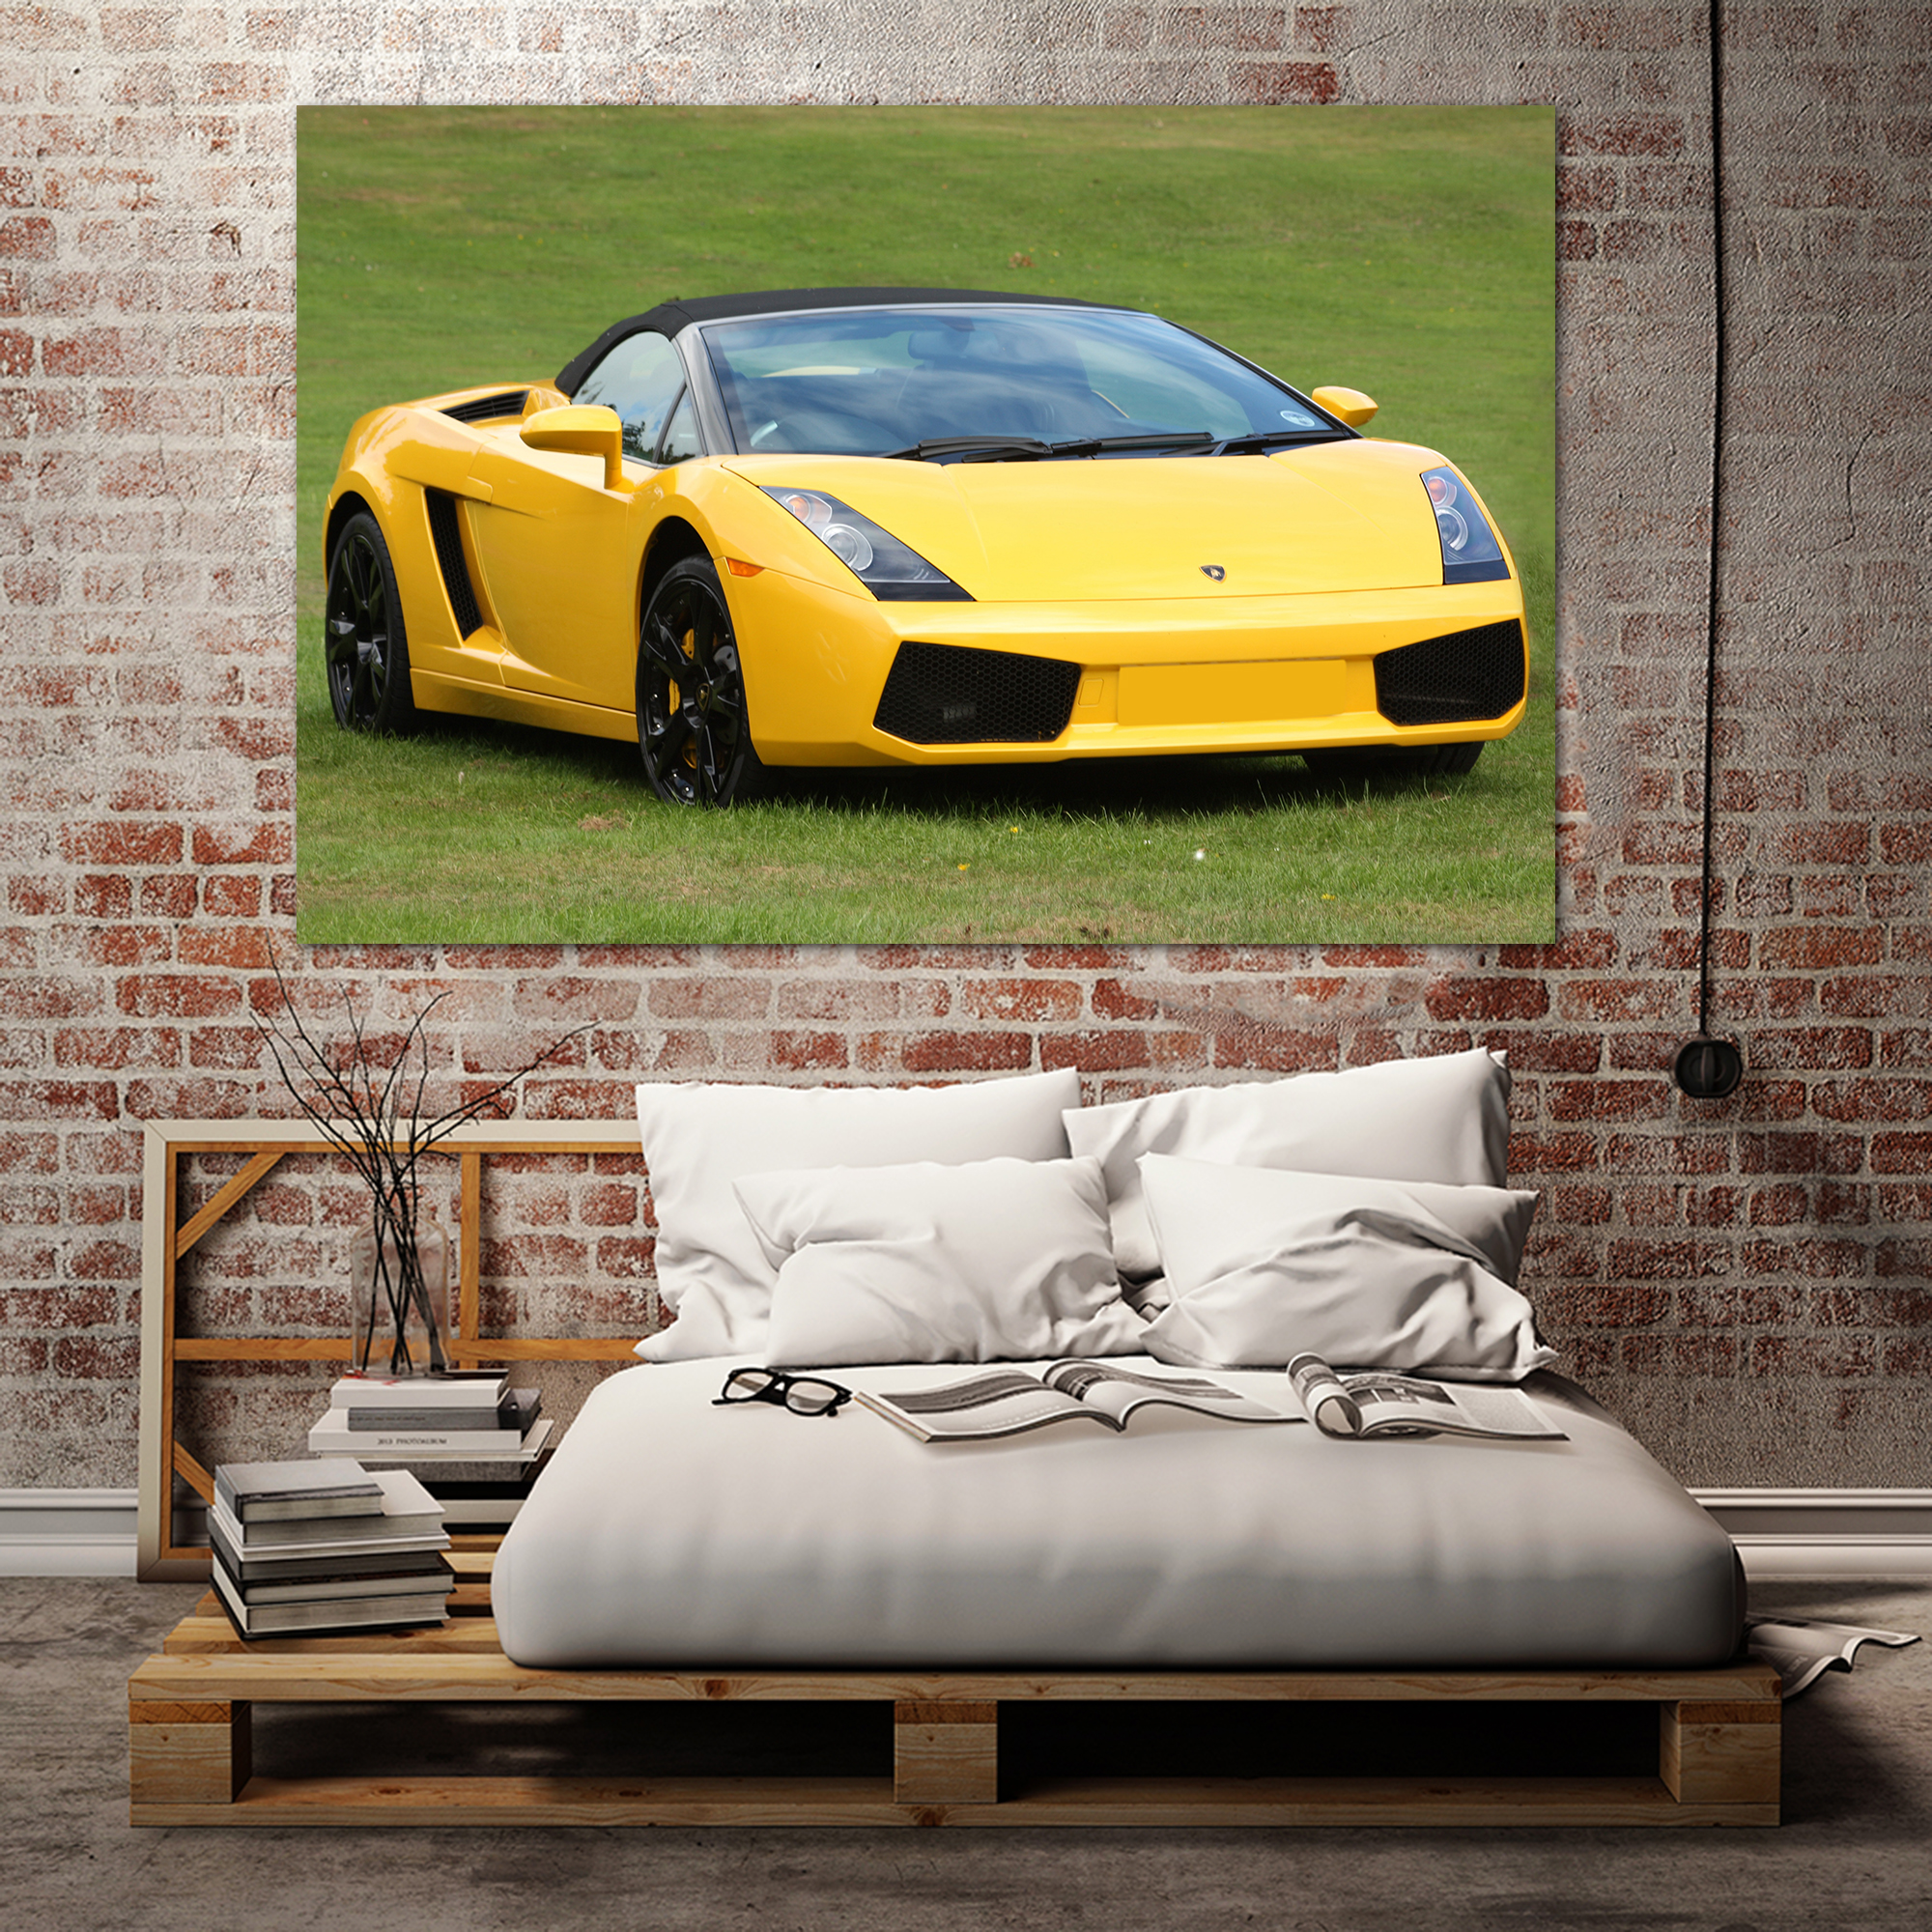 Lamborghini Gallardo Convertible Sports Car Art Print Wall Decor